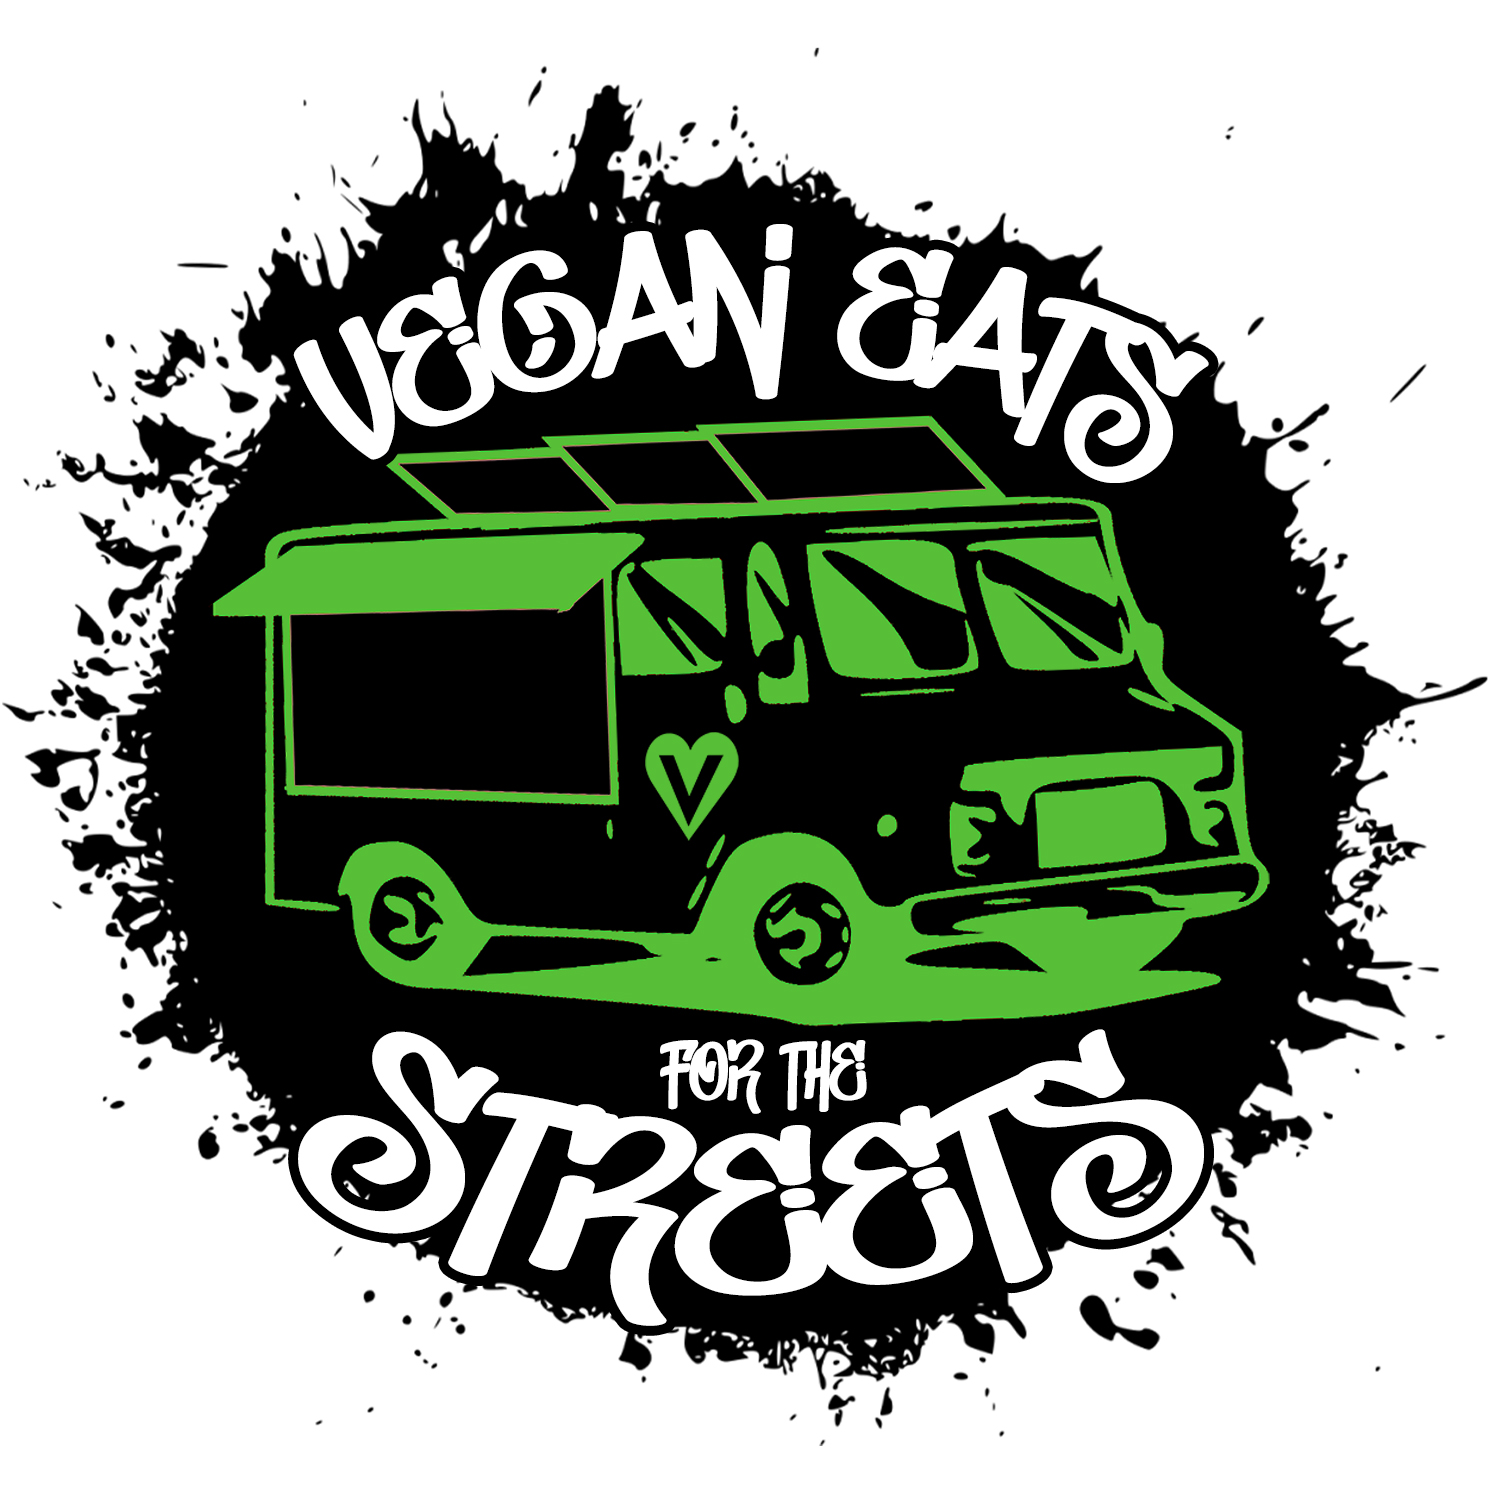 veganeatsforthestreetslogo